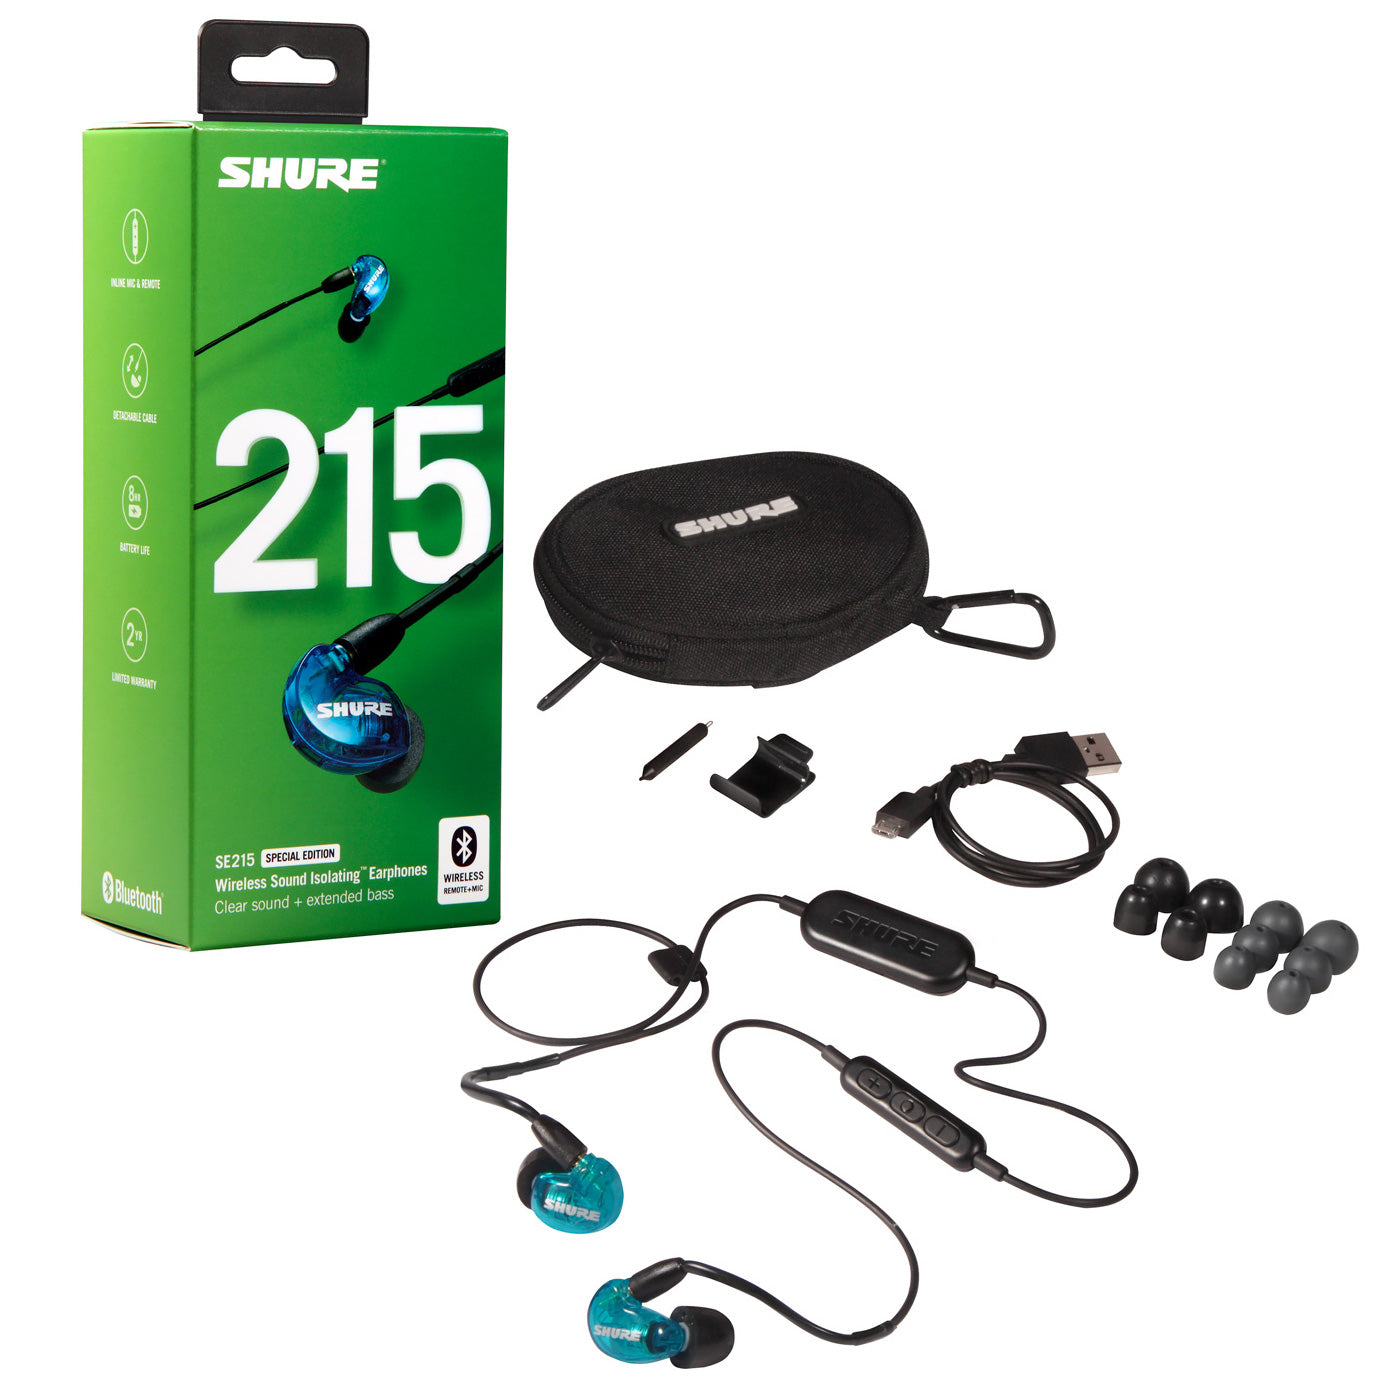 Shure SE215 Wireless Sound Isolating Earphones, Translucent Blue